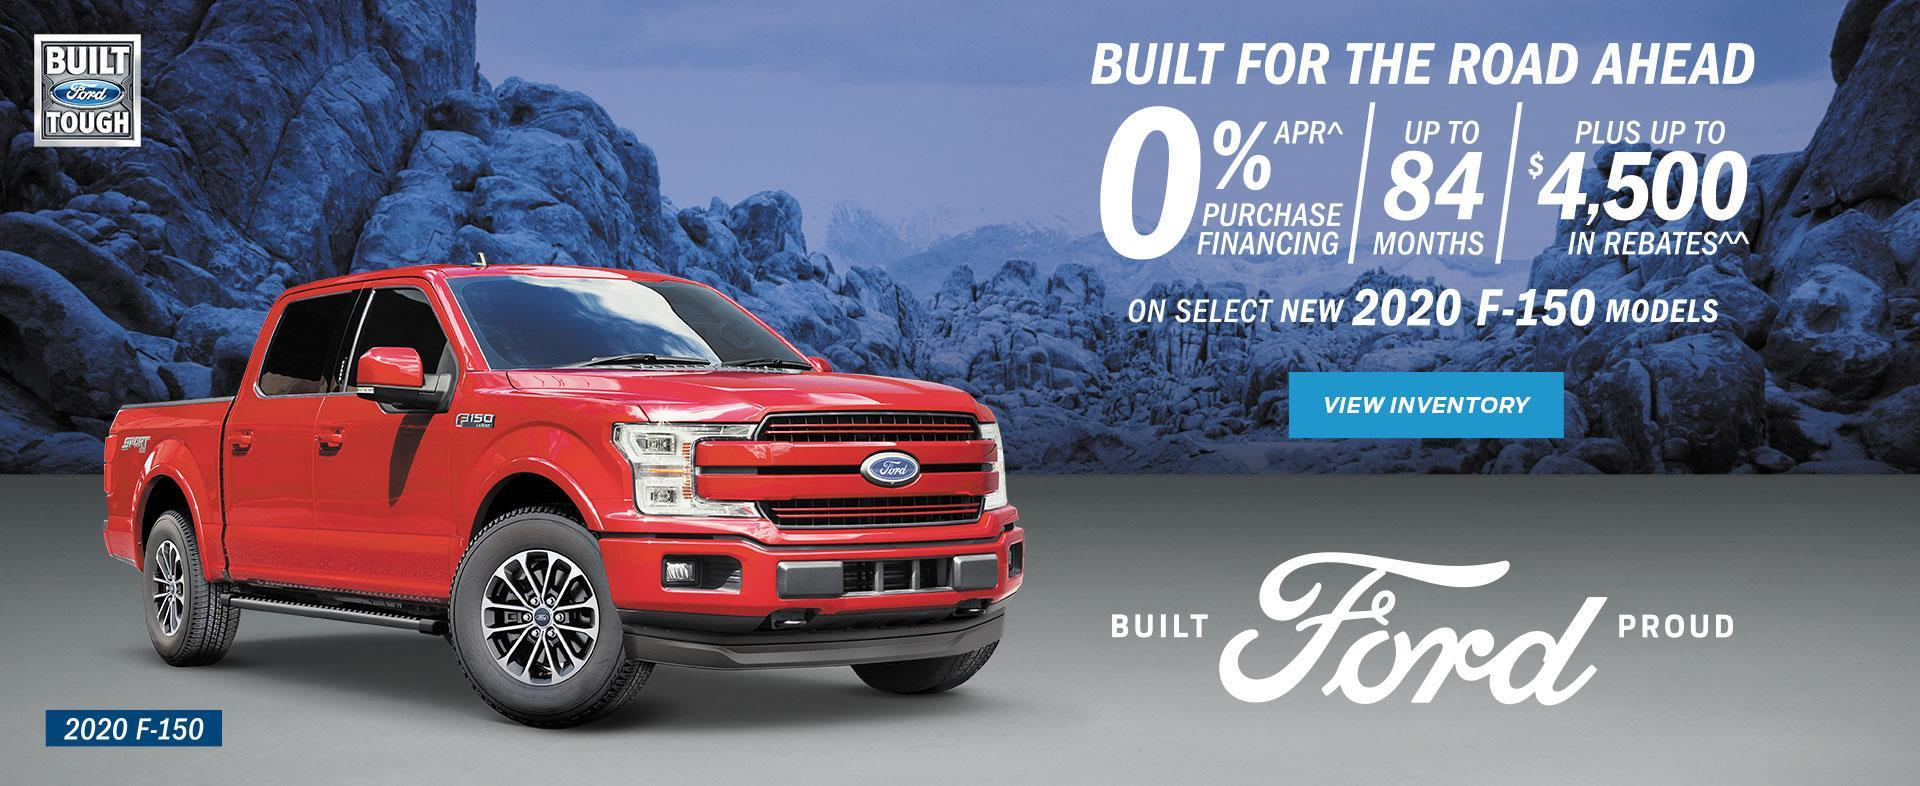 Build for the road 2020 F-150 red